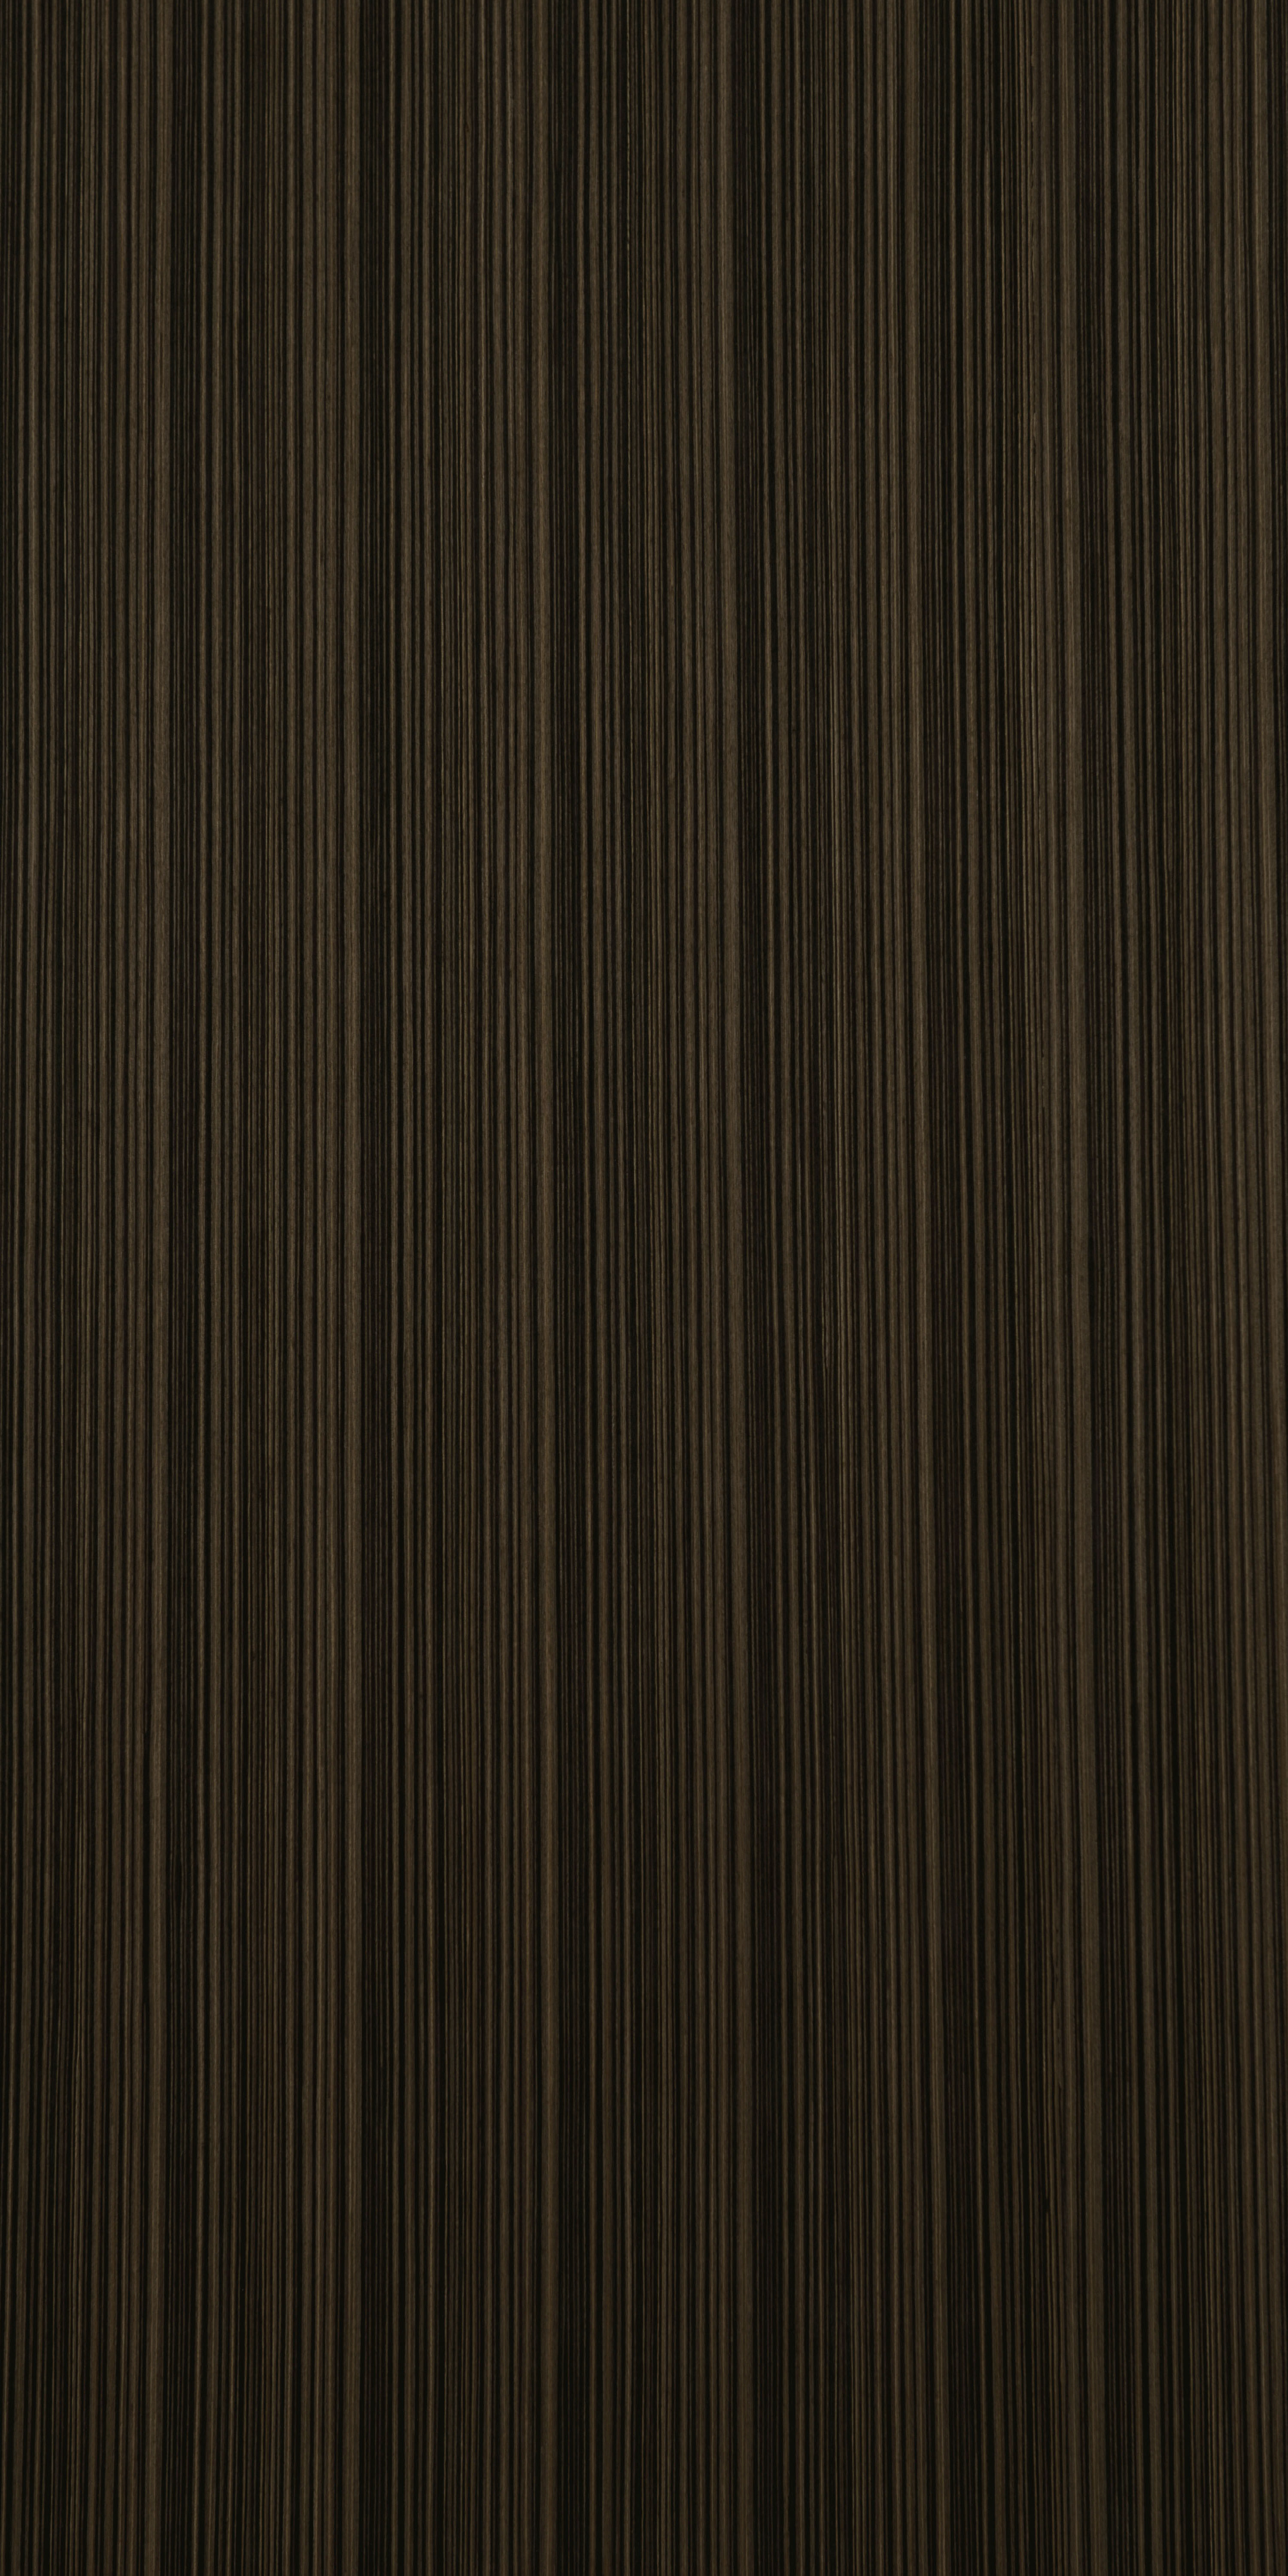 227 Recon Ebony Veneer Plywood, Billiona Enterprise Singapore